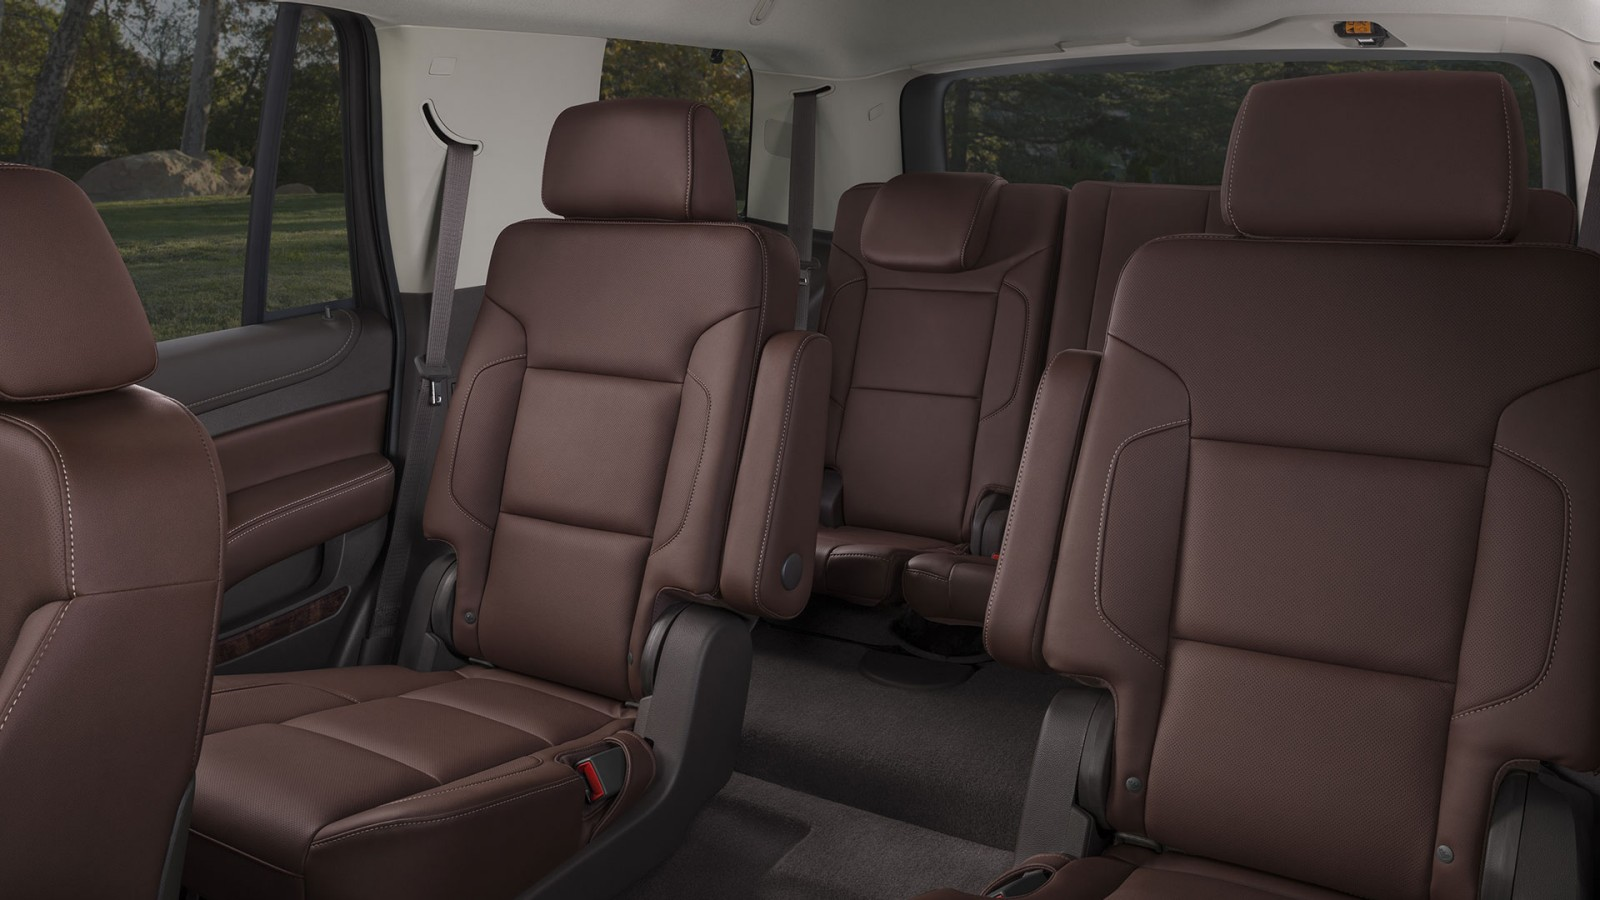 New Chevrolet Tahoe Interior image 2